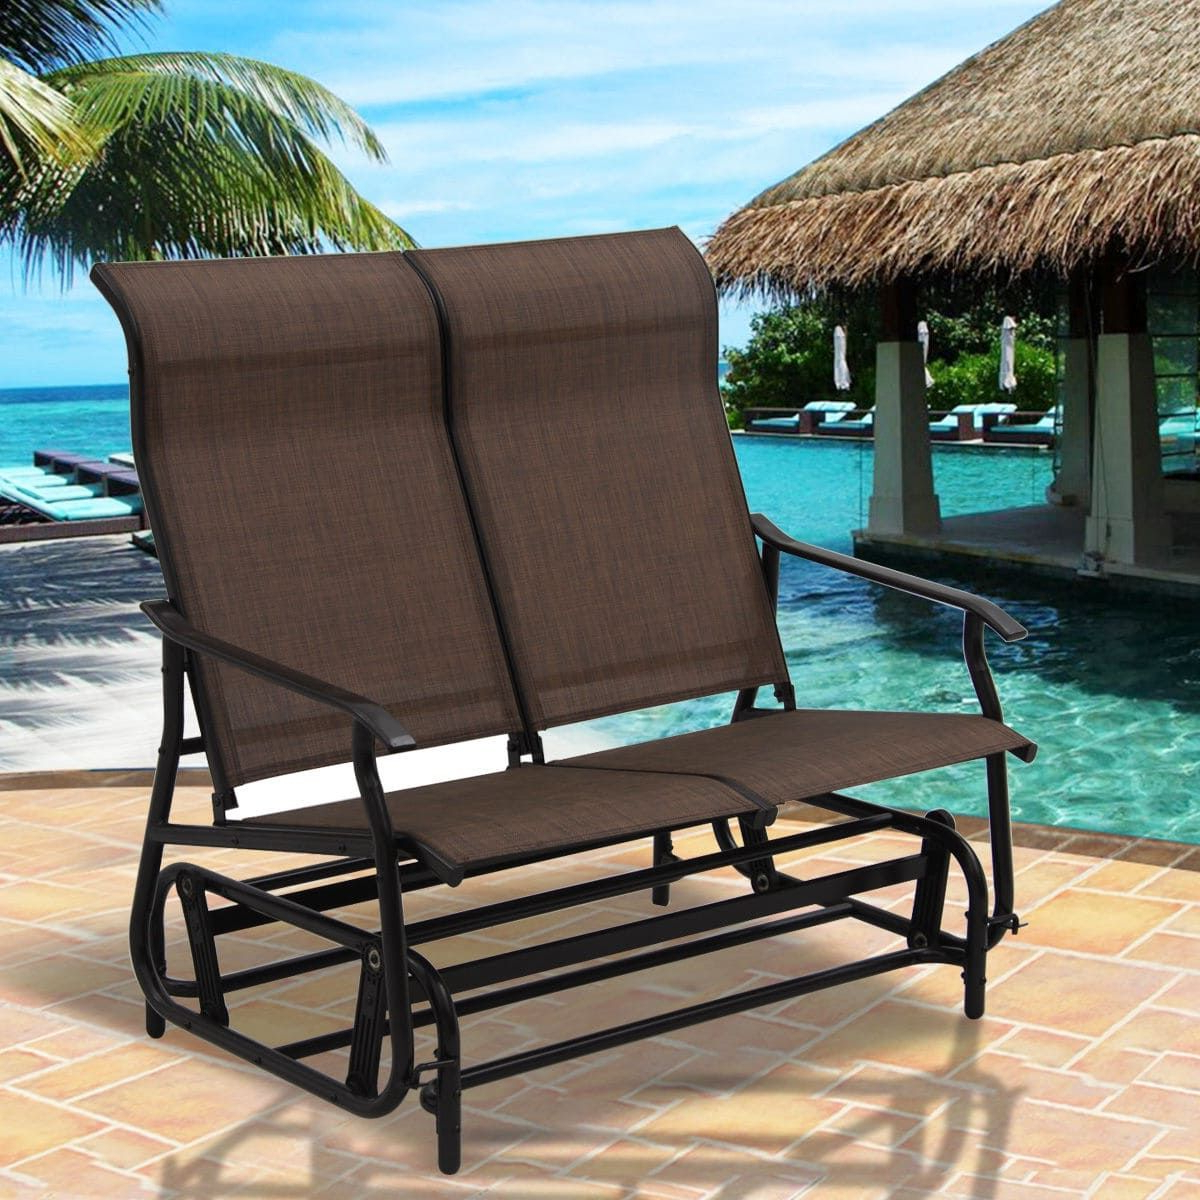 Rocking Love Seats Glider Swing Benches With Sturdy Frame Regarding Trendy Costway 2 Person Patio Glider Rocking Bench Double Chair (View 26 of 30)